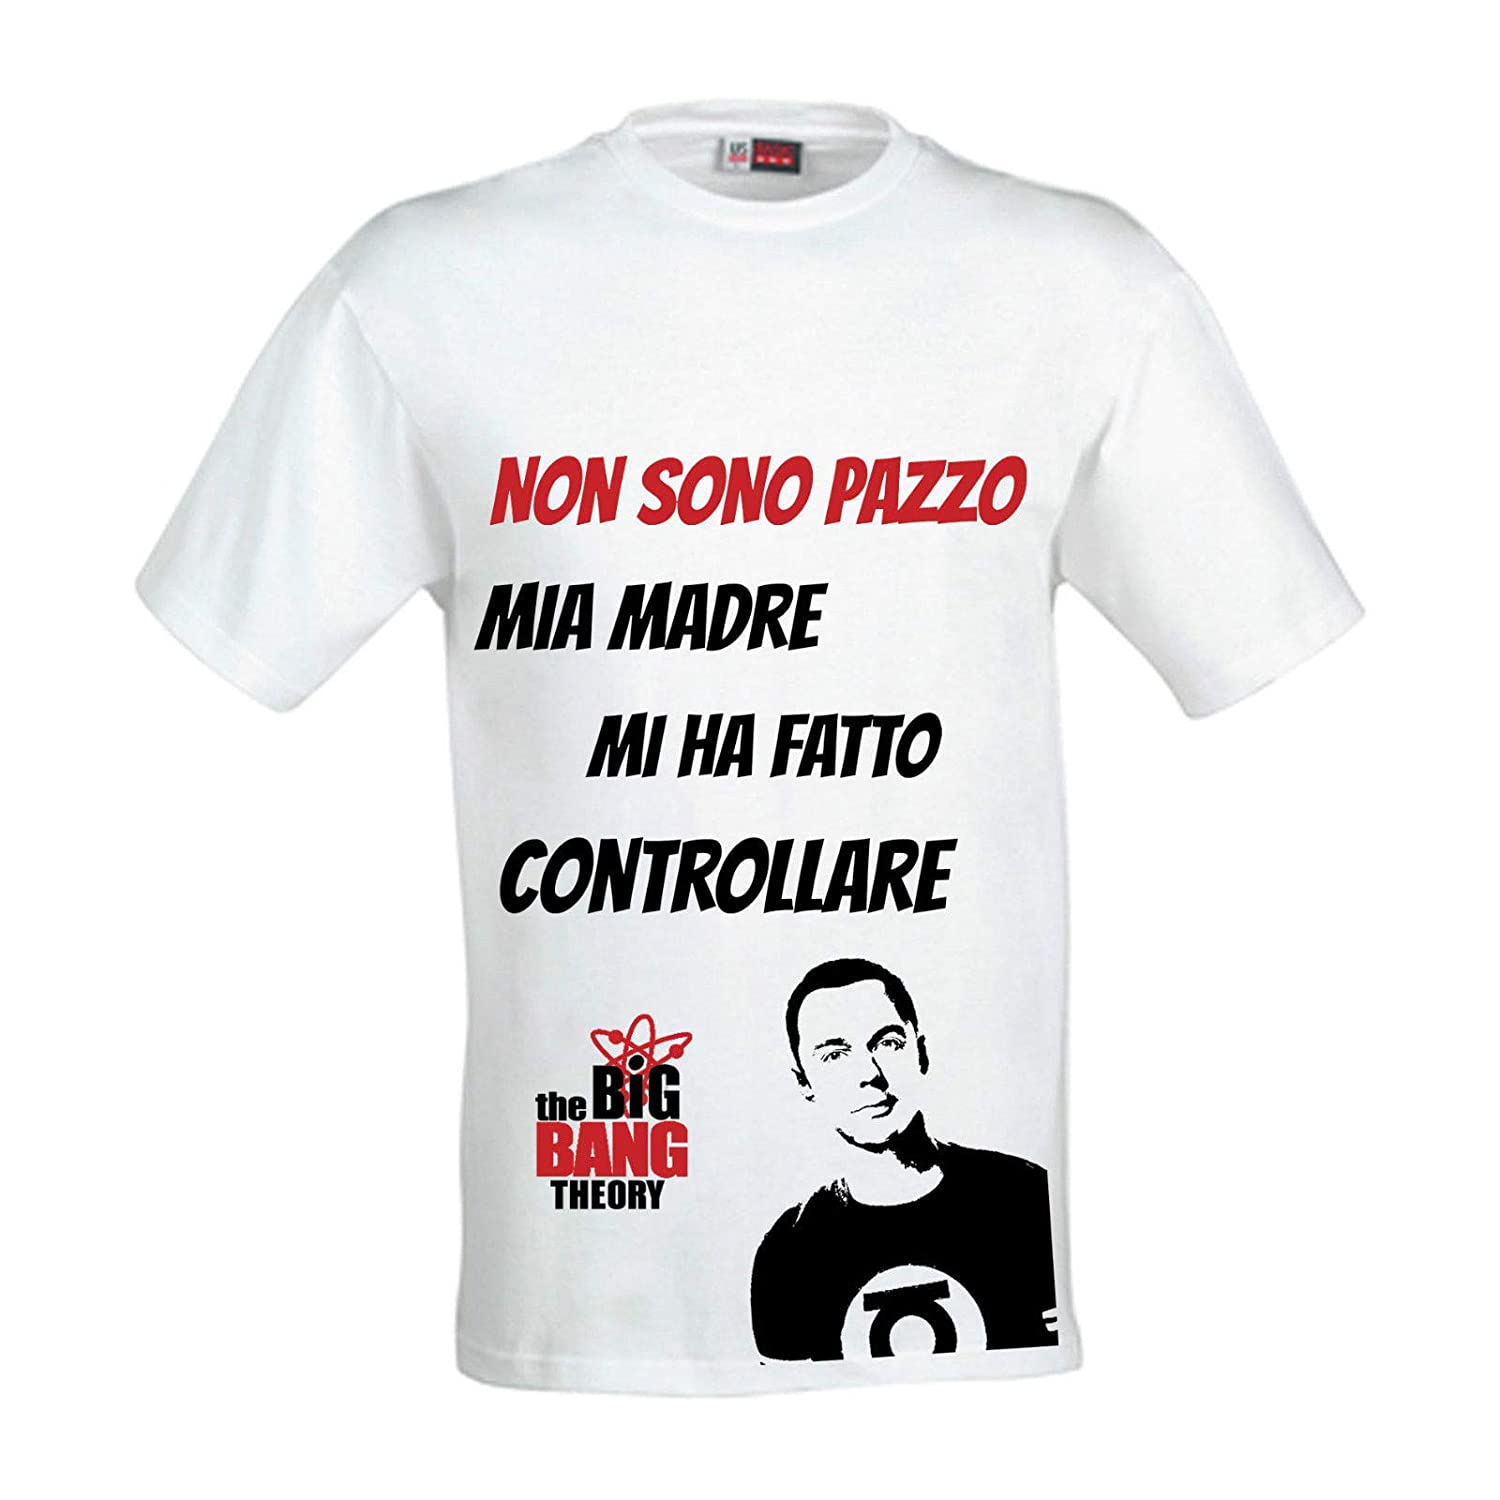 T-Shirt uomo Sheldon Cooper di The Big Bang Theory, scegli la tua taglia!